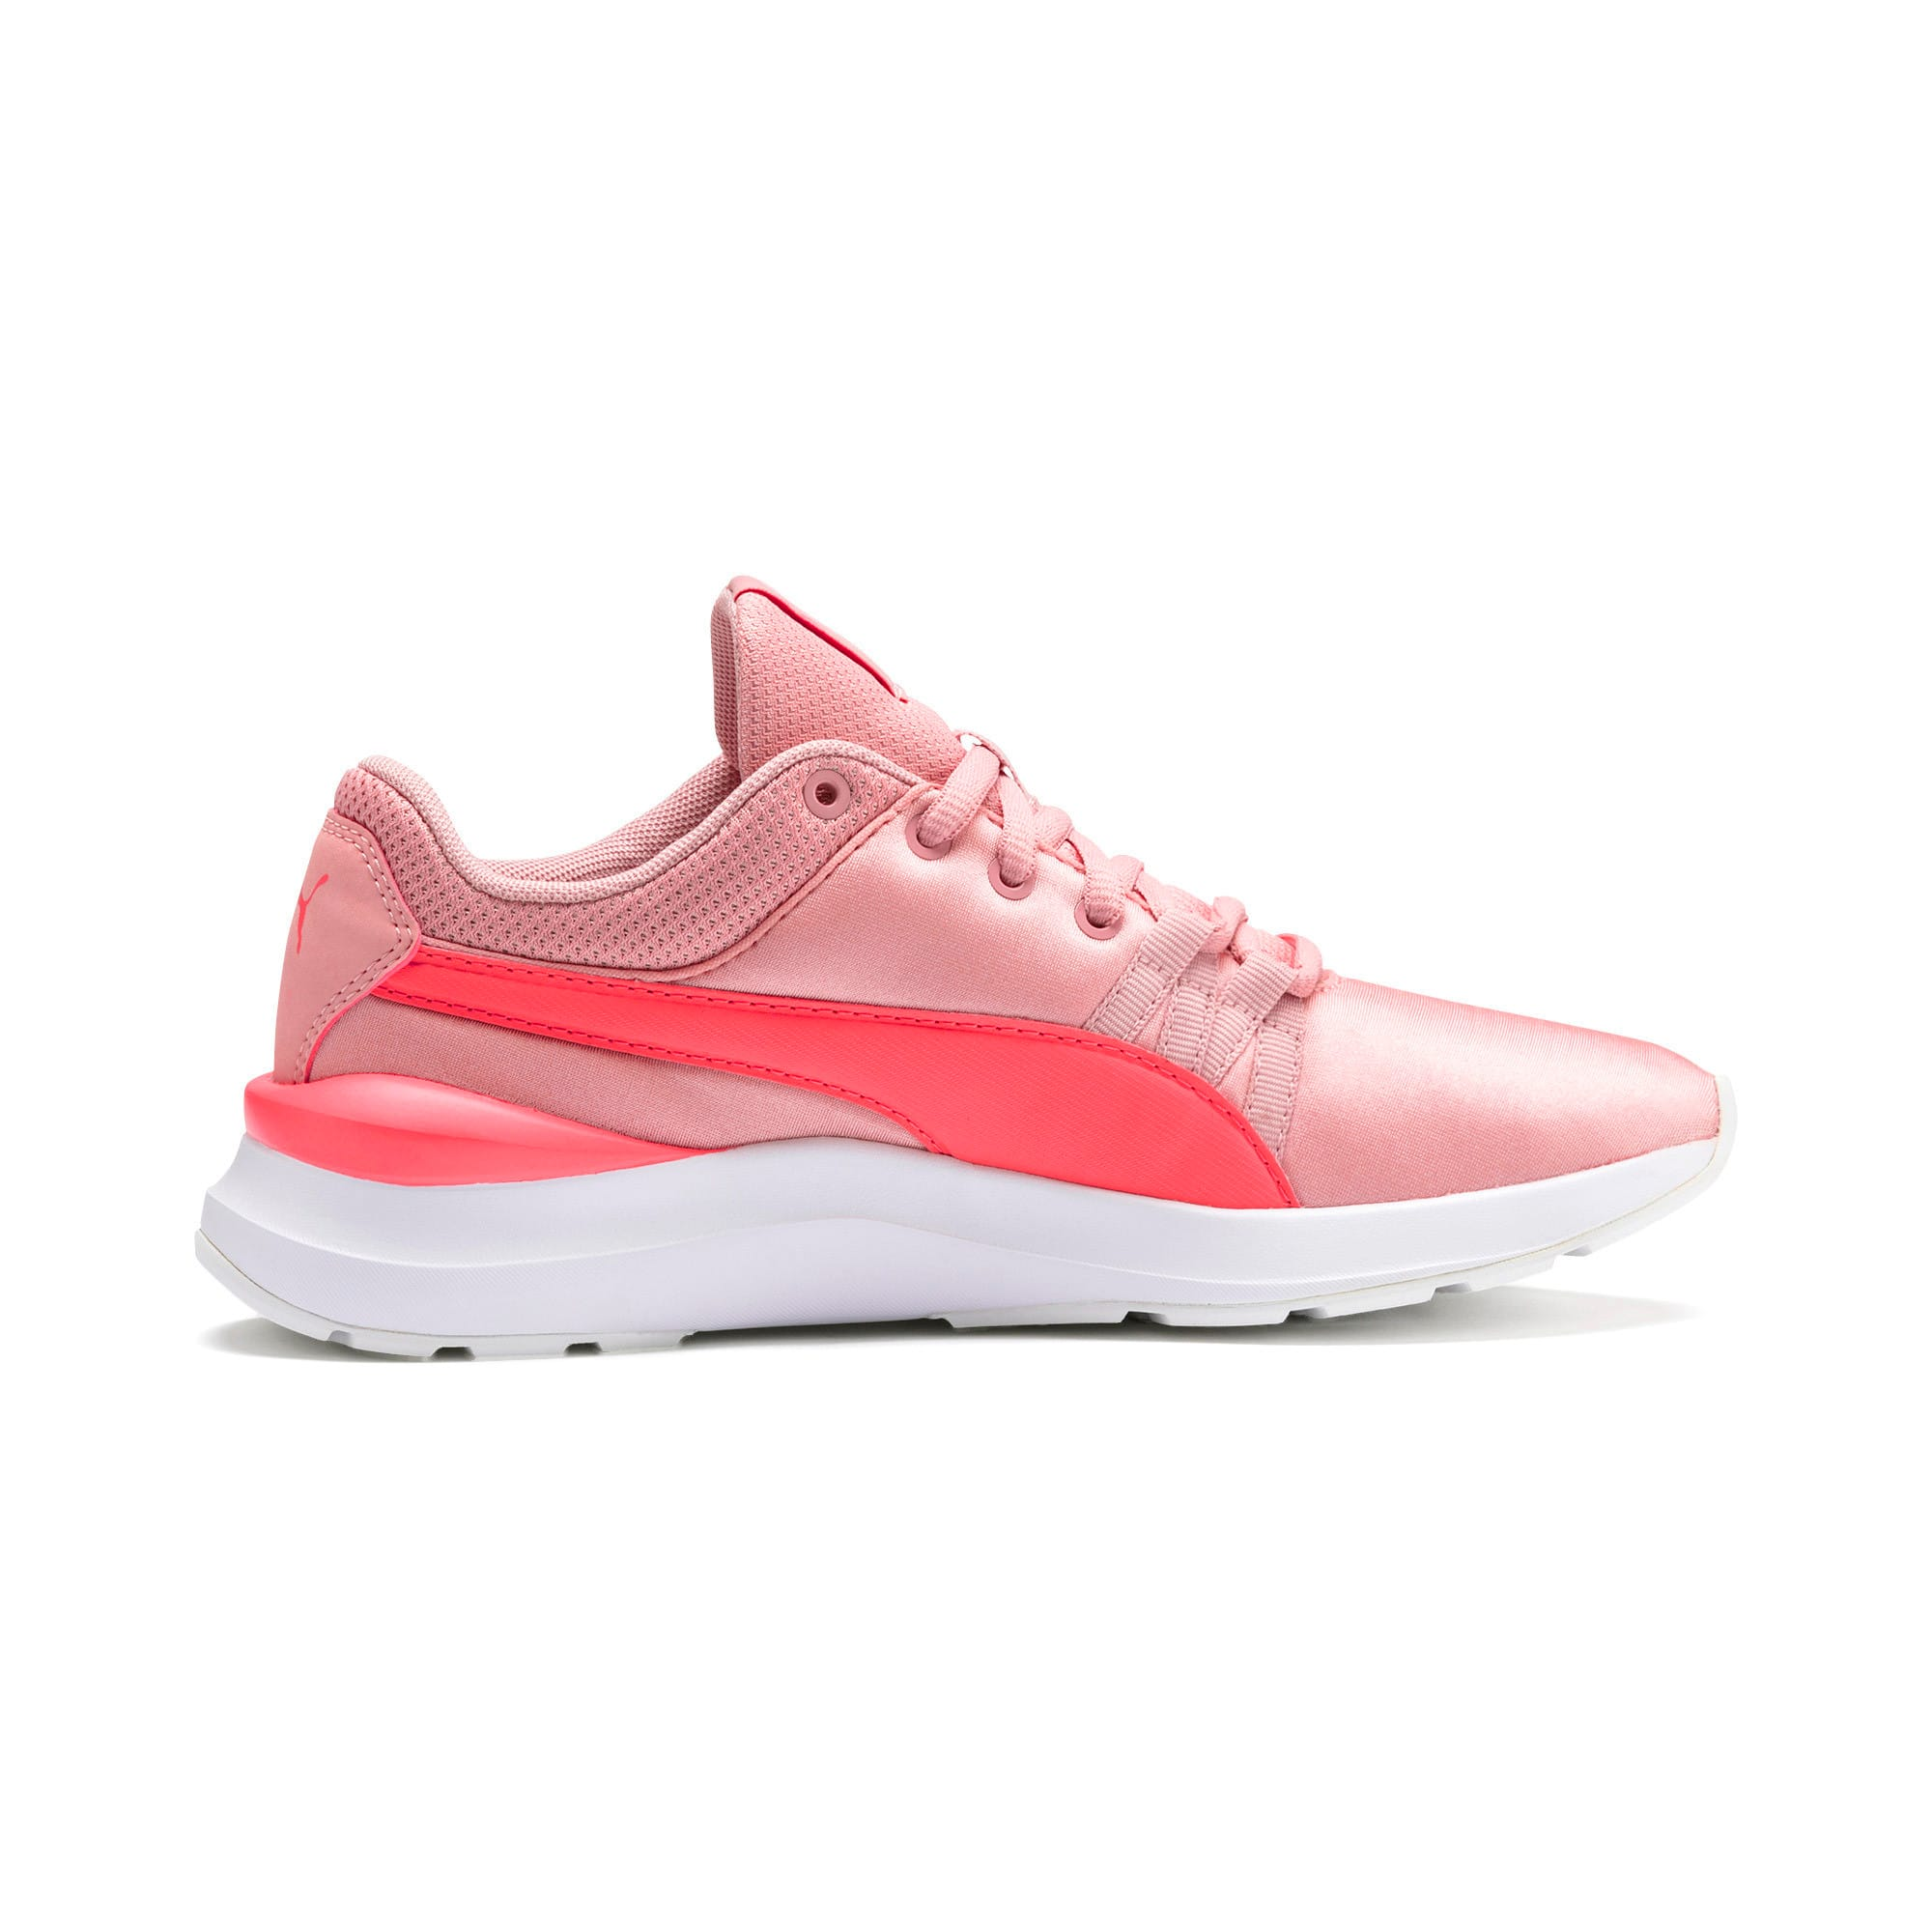 Thumbnail 5 of Adela Satin Girls' Trainers, Bridal Rose-Calypso Coral, medium-IND